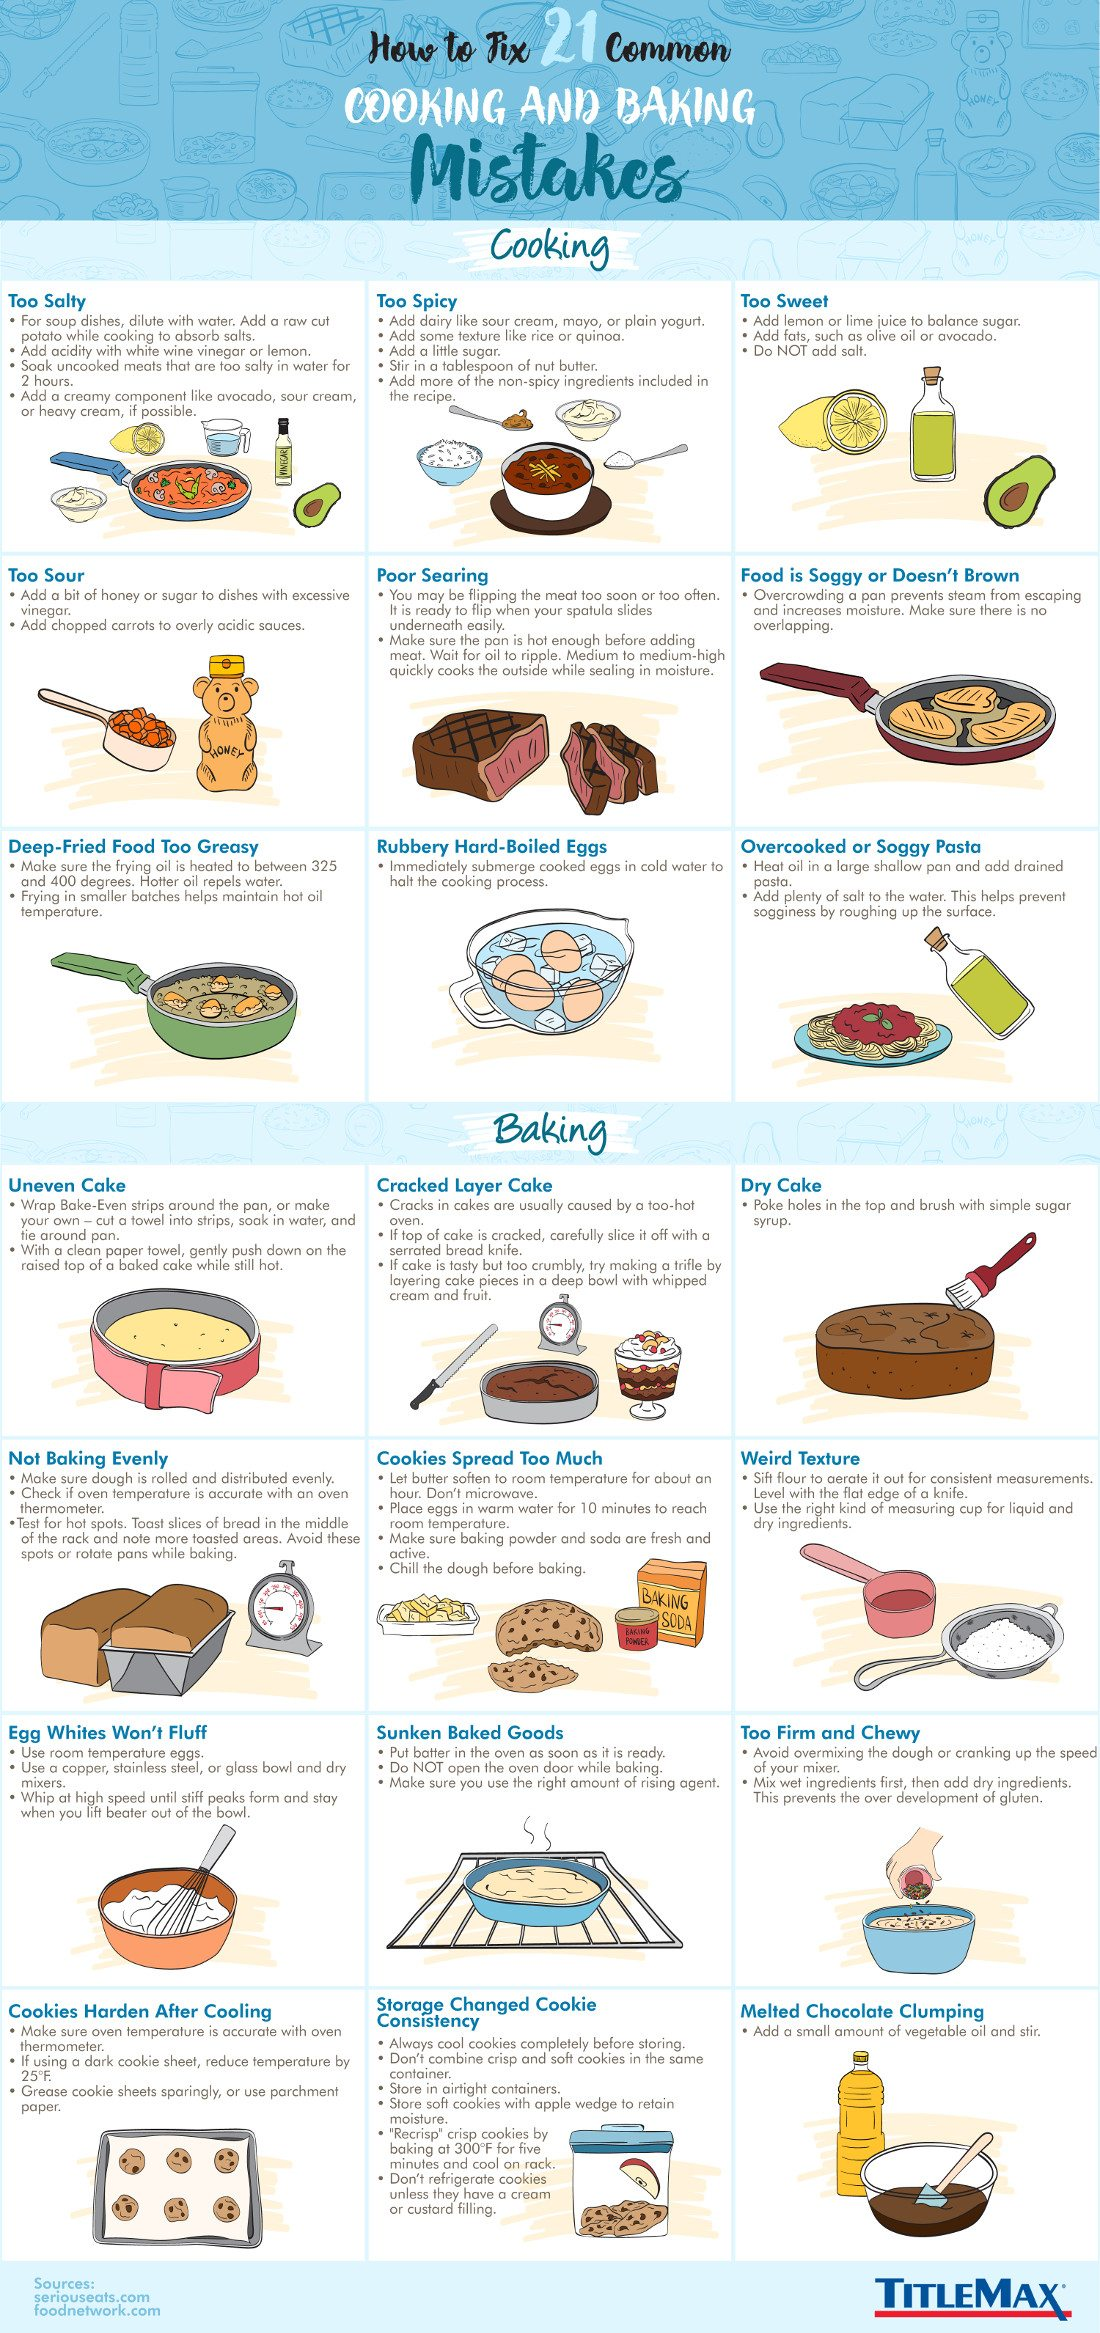 How to Fix 21 Common Cooking and Baking Mistakes #infographic